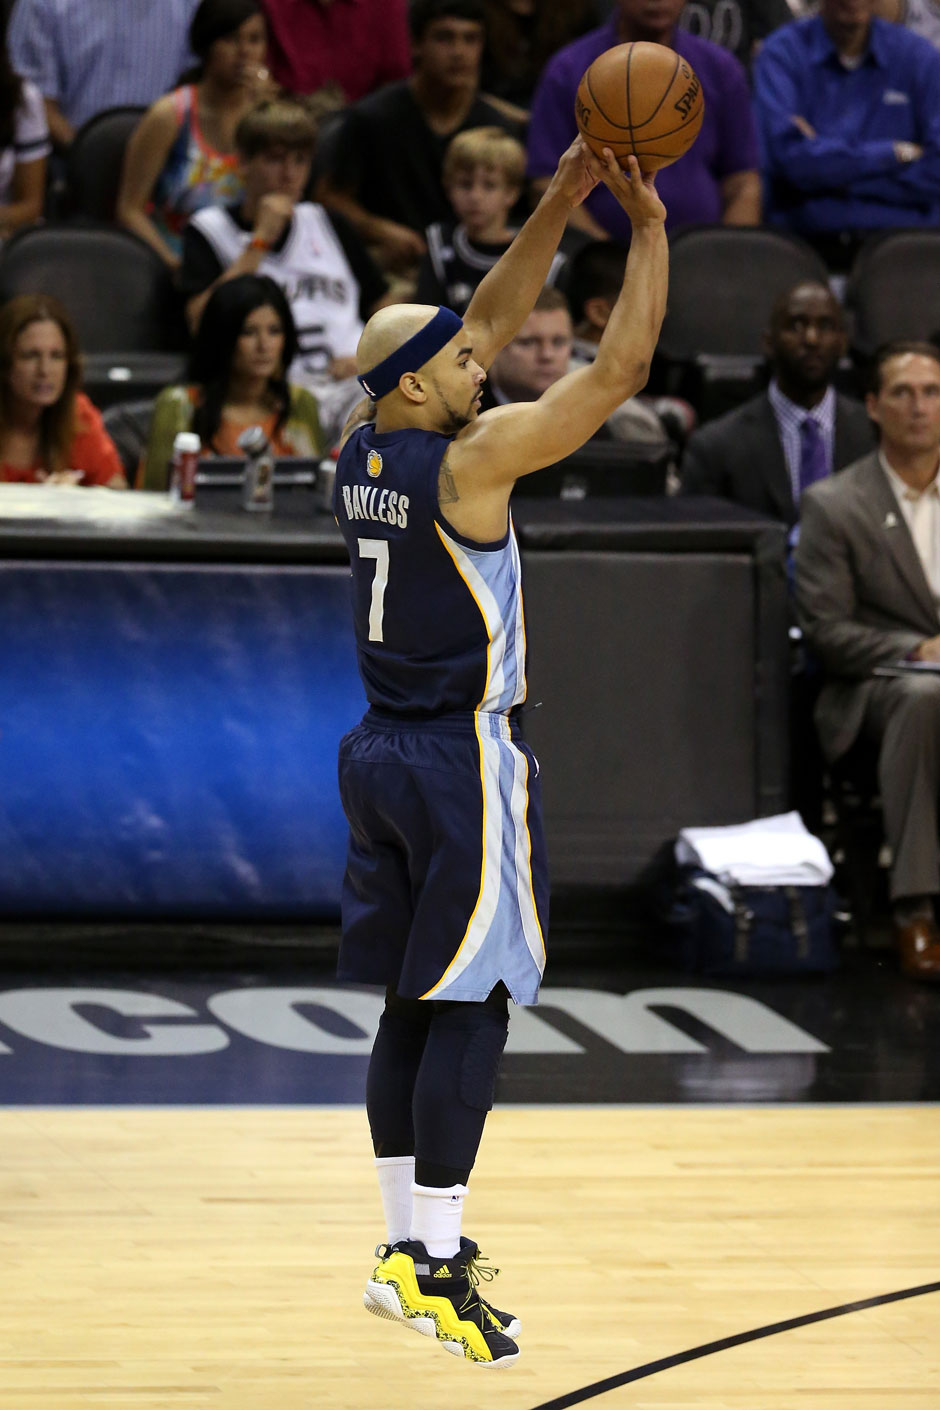 Bank: Jerryd Bayless (Point Guard, 8,0 Punkte, 1,9 Rebounds)